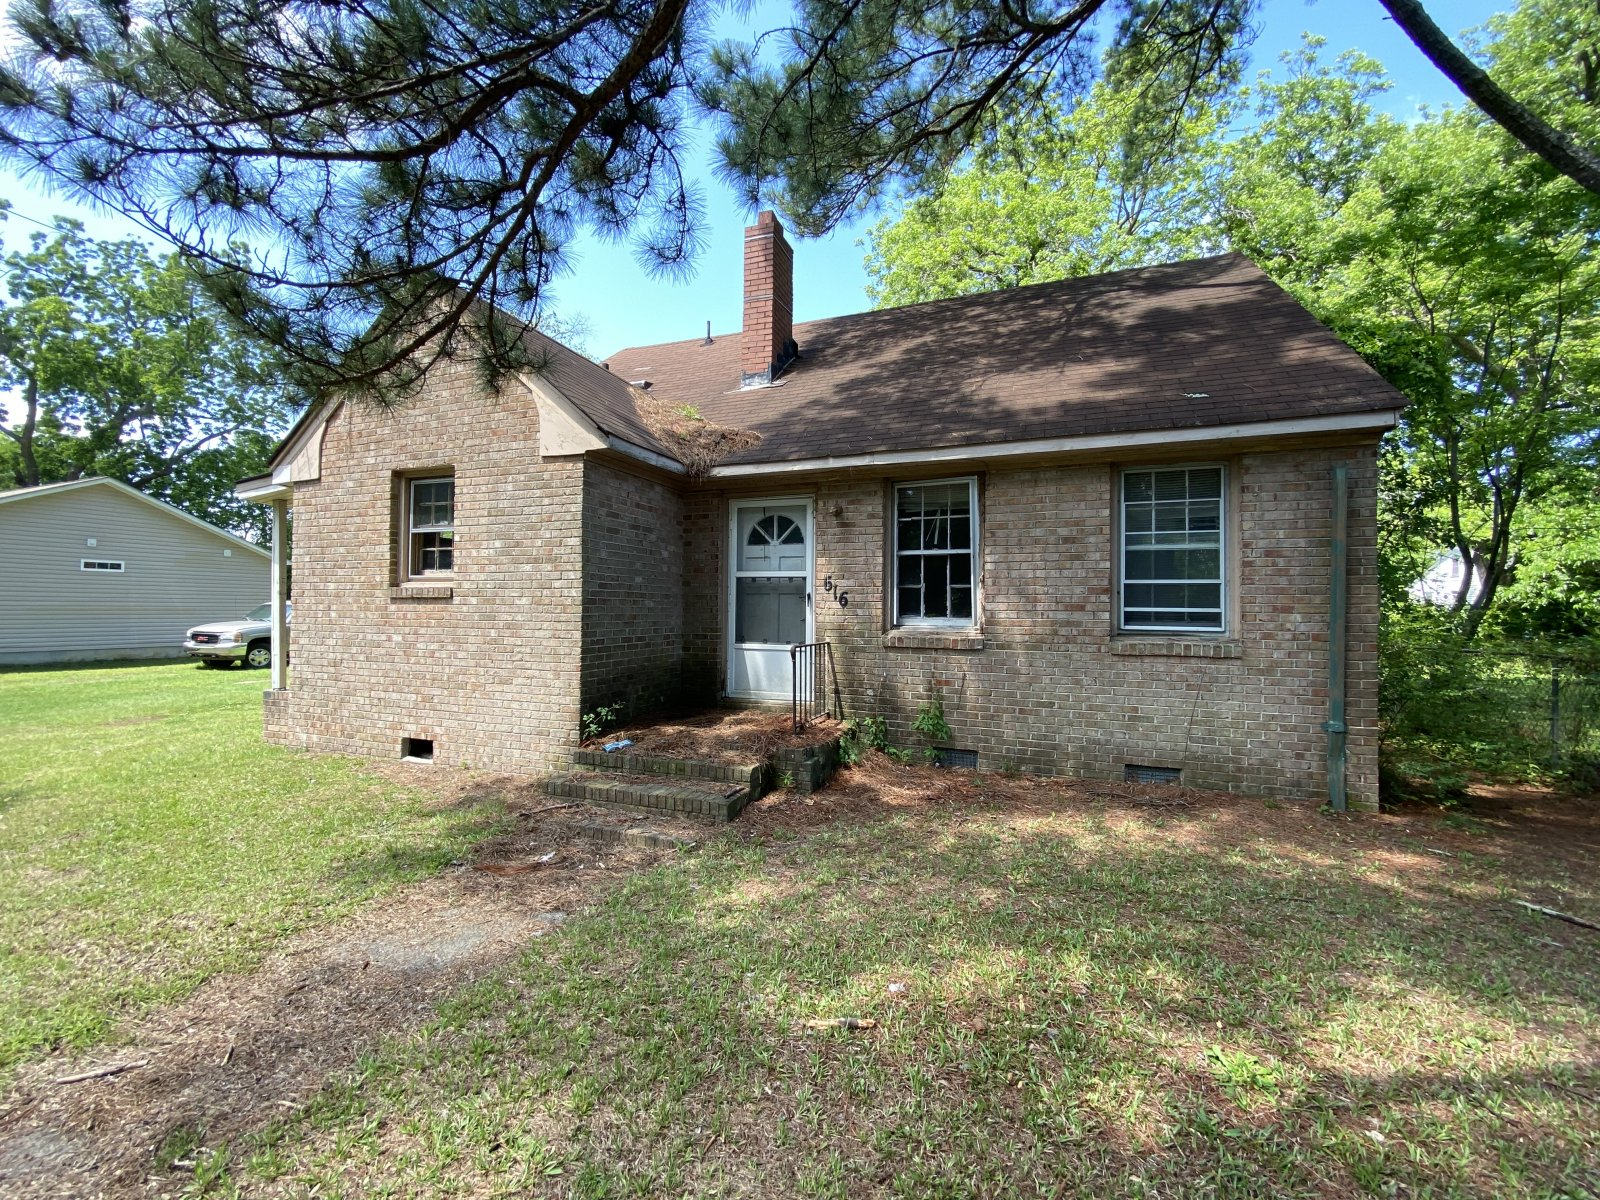 buy-cash-homes-Greenville-sell-my-house-fast-for-cash-off-market